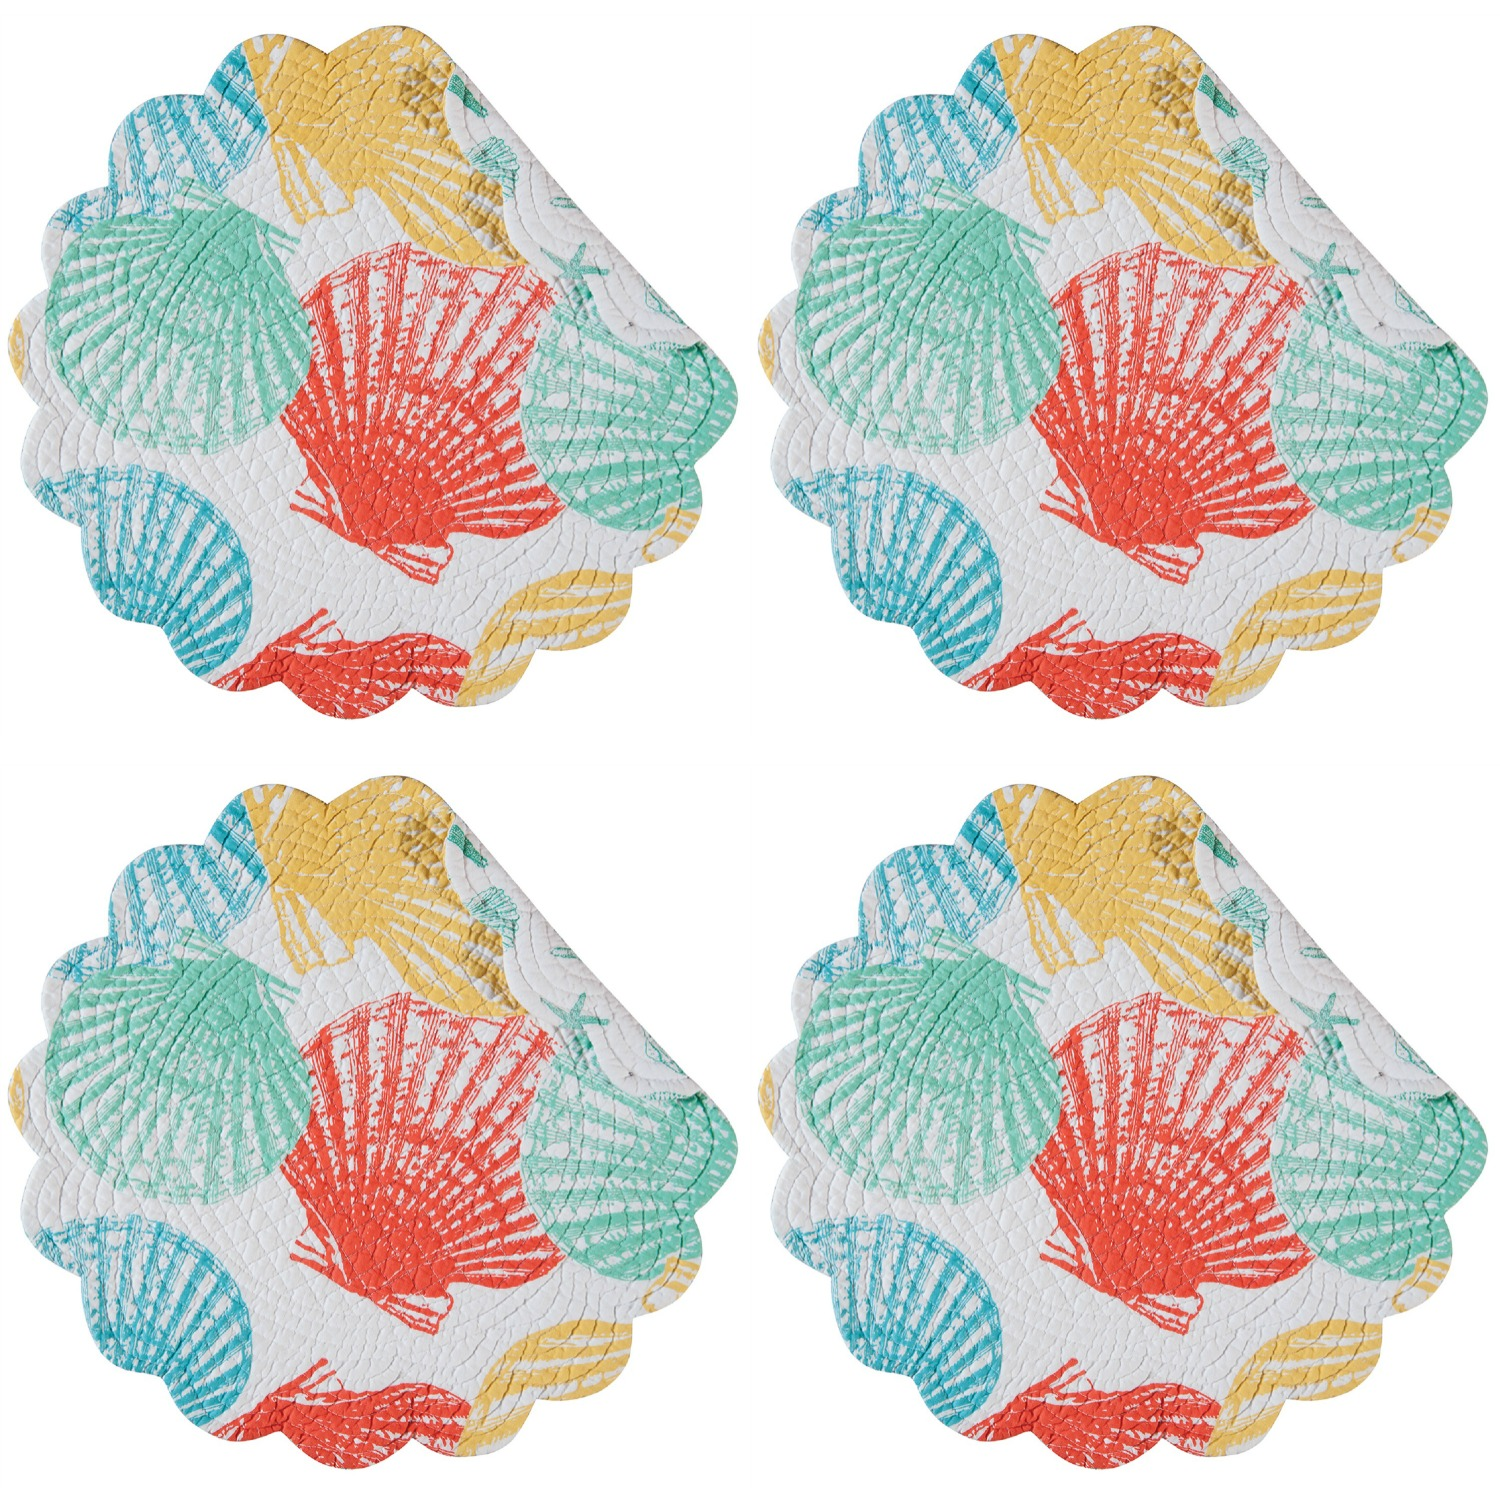 Captiva Island Shells Teal Yellow Green Round Quilted Scallop Placemats Set of 4